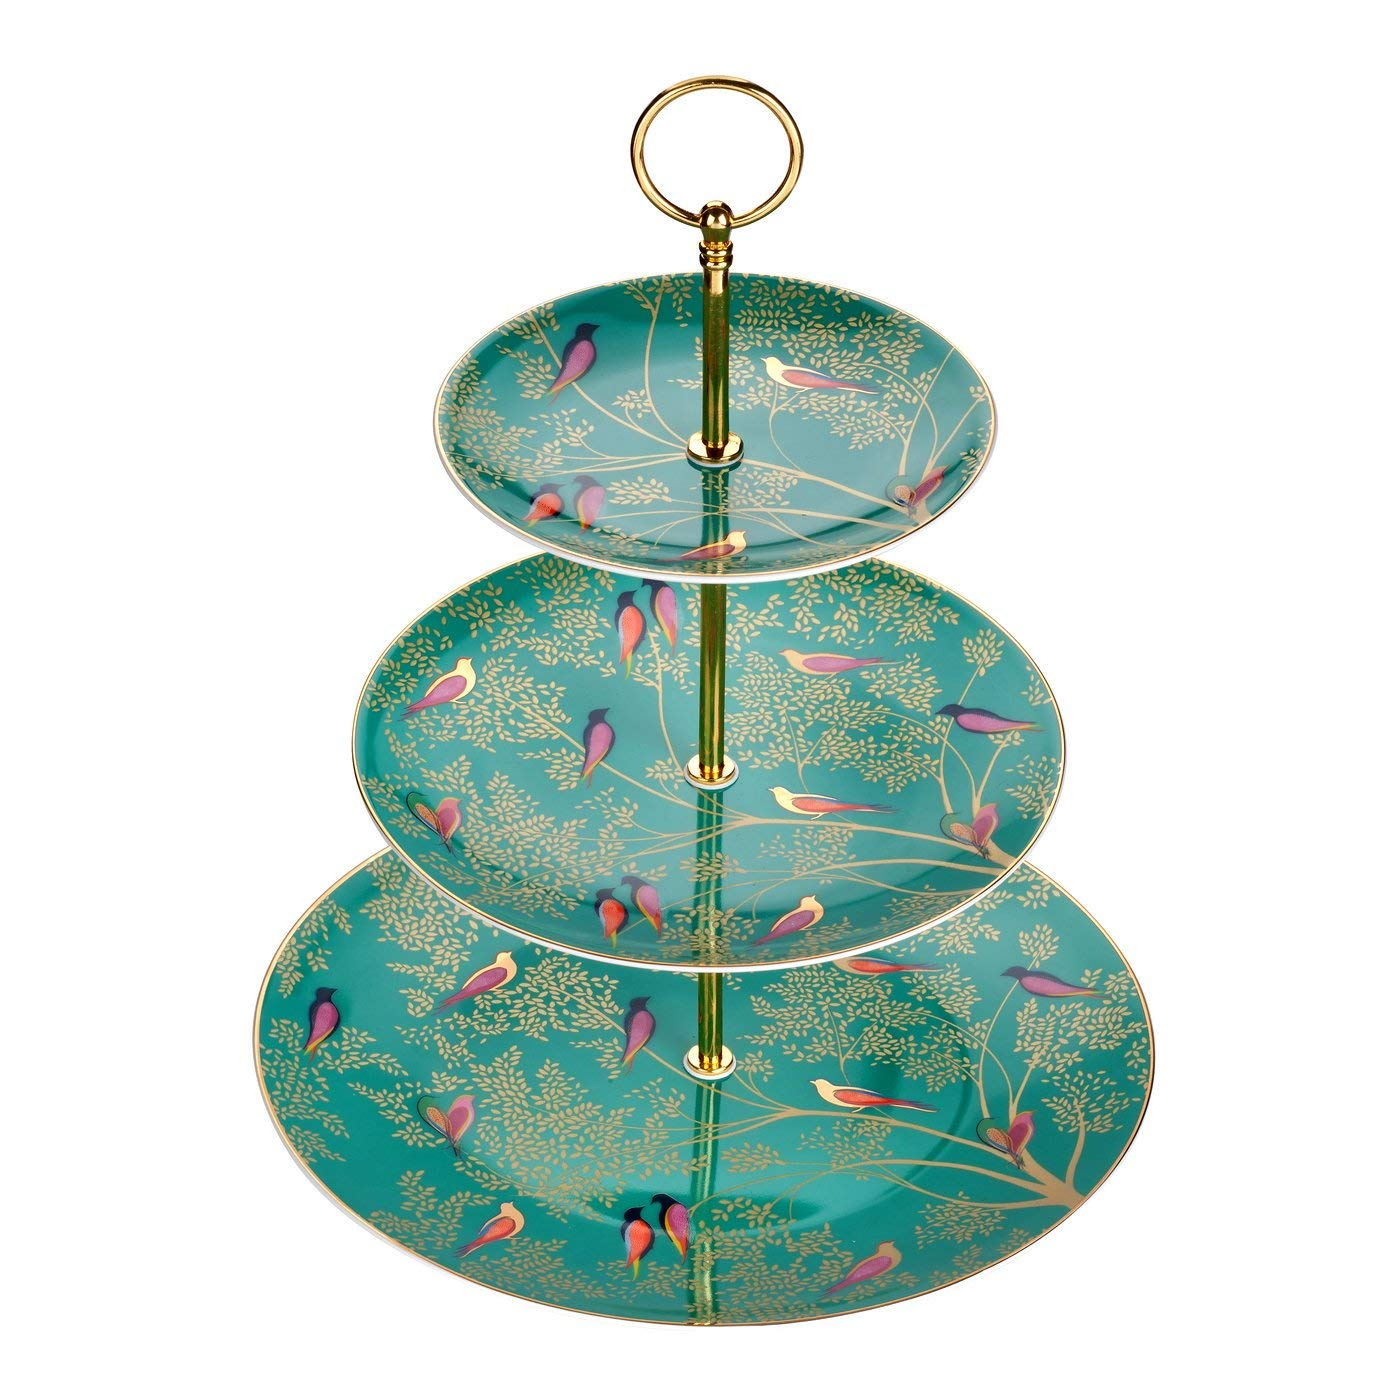 ** WIN ** Tea set and cake stand from Sara Miller & Portmeirion